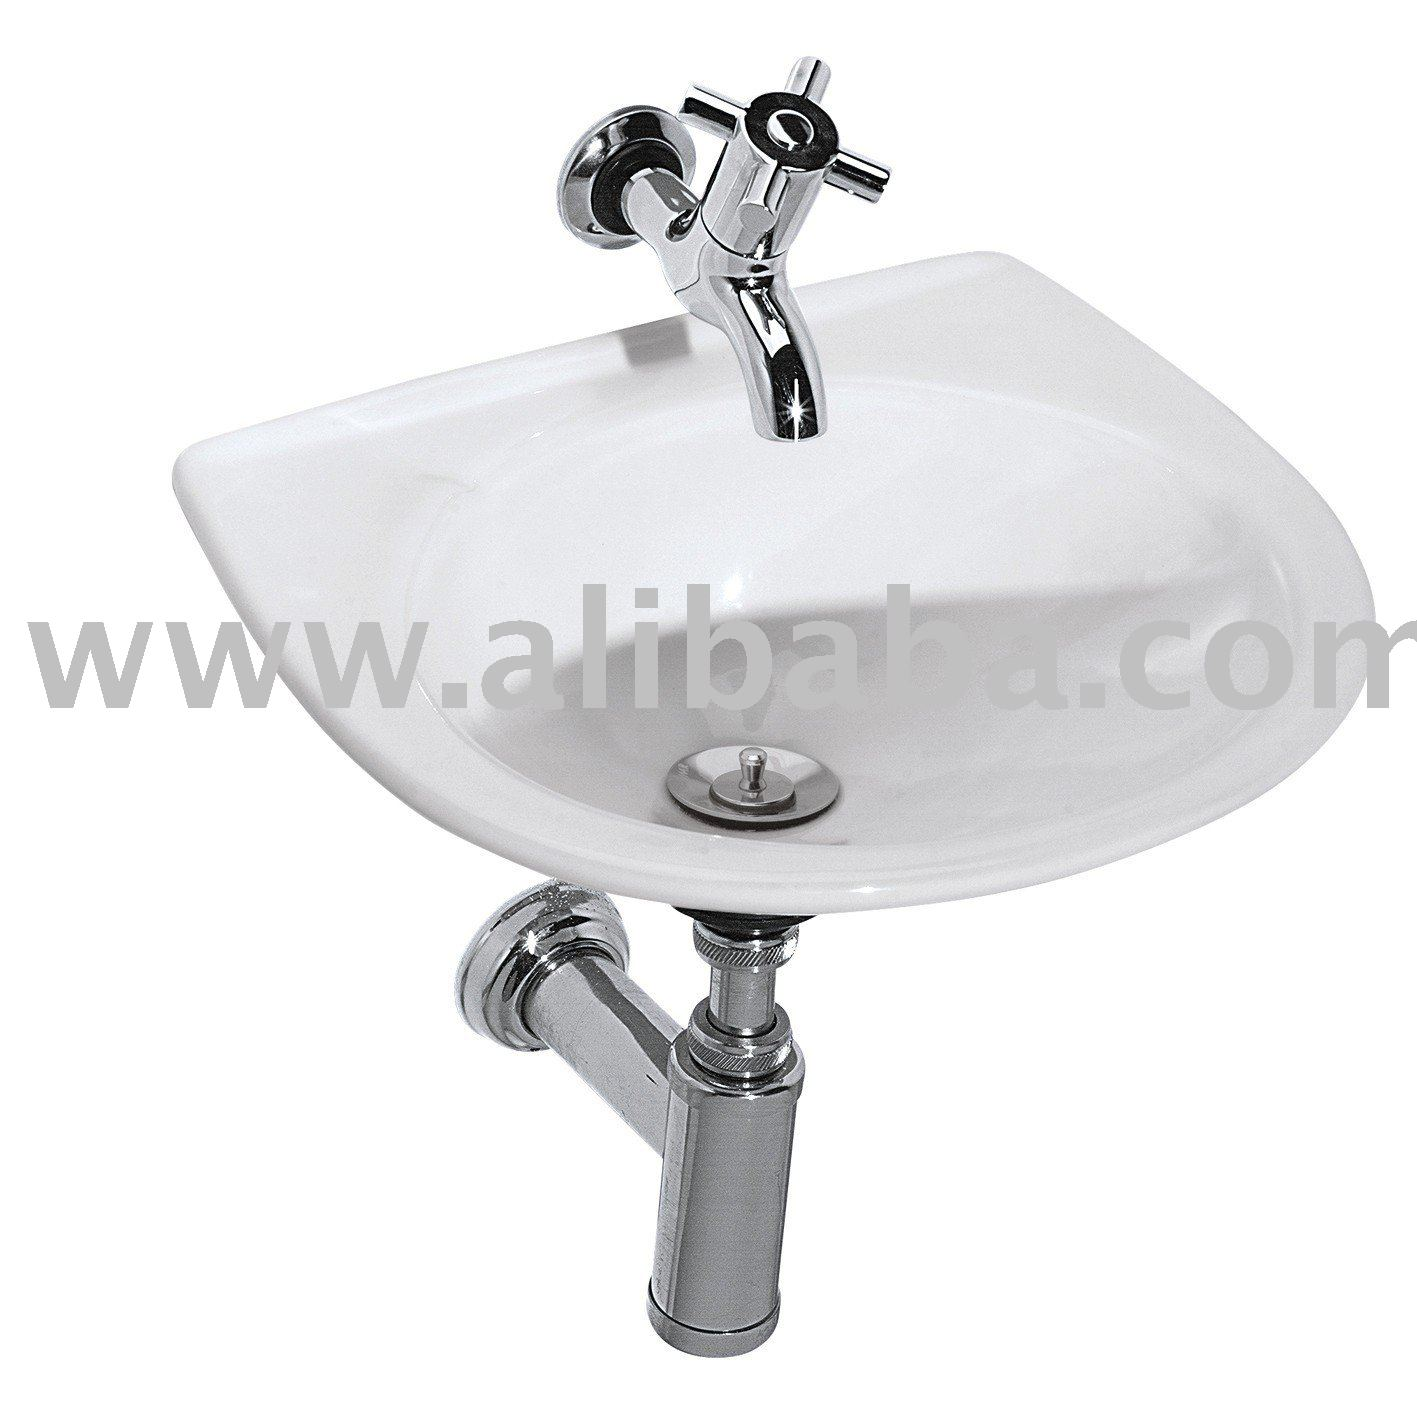 Hanging Bathroom Sink : Colonial Small Hanging Bathroom Sink - Buy Hanging Bathroom Sink ...